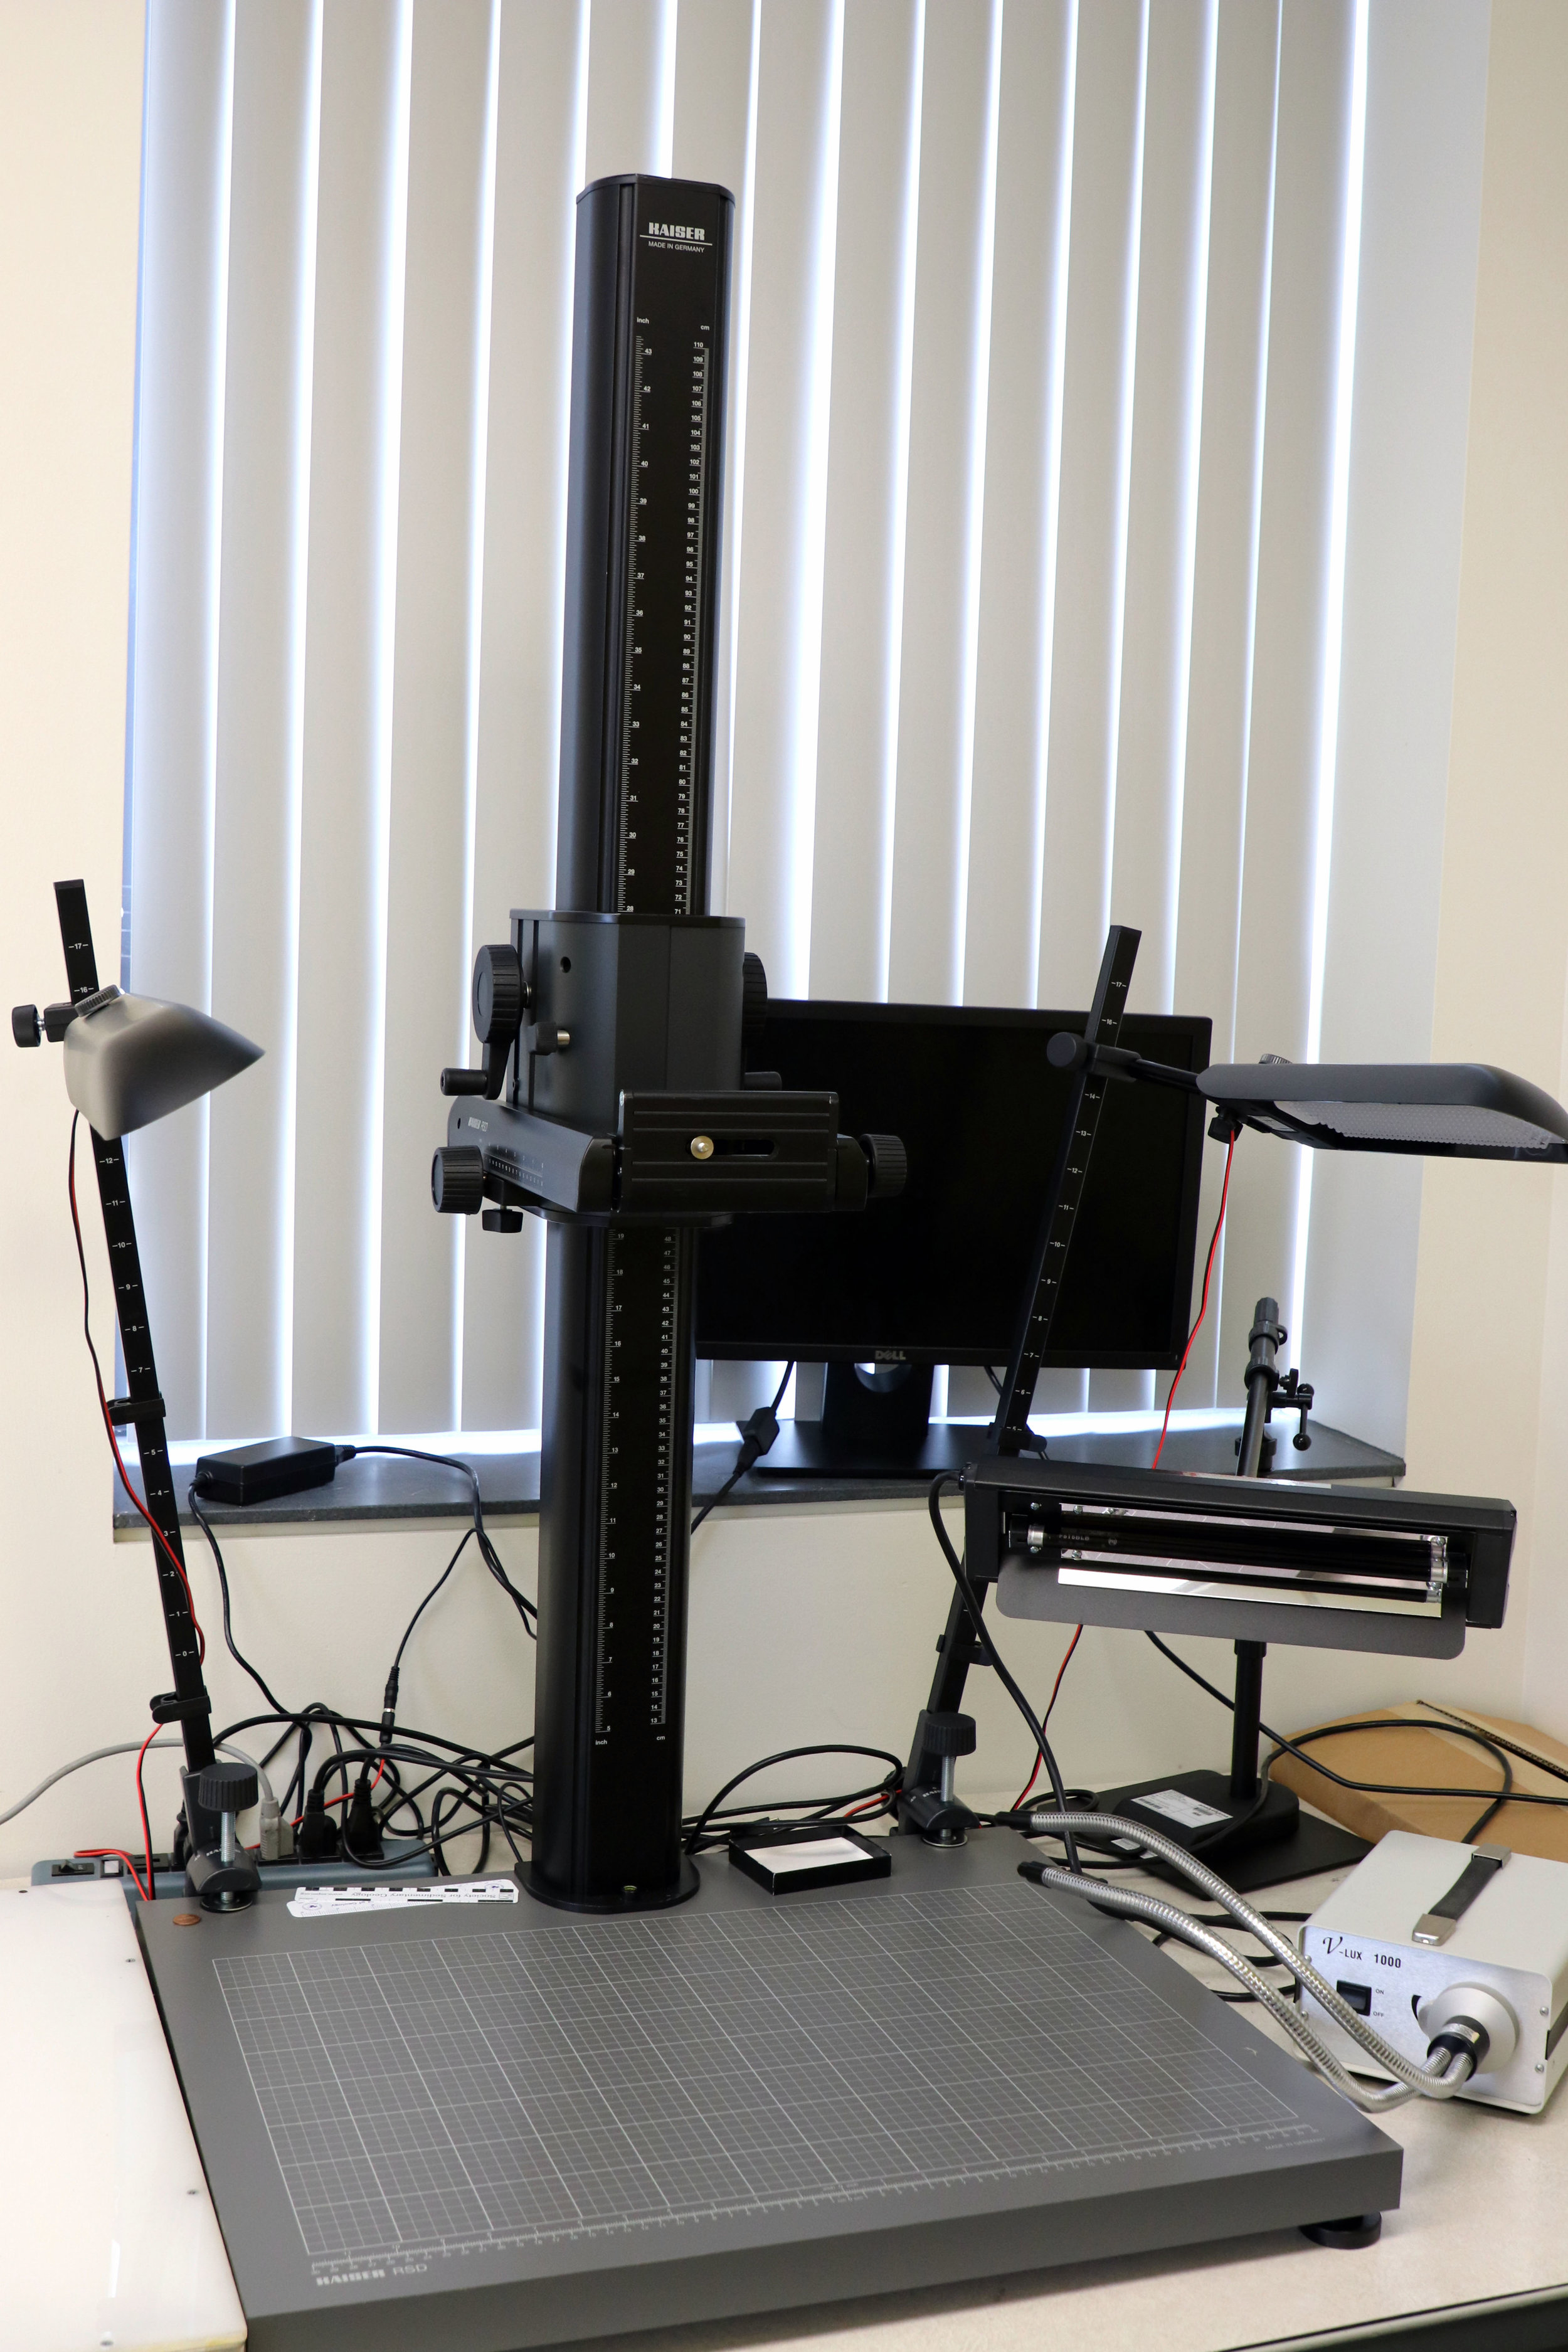 Camera stand and lighting system